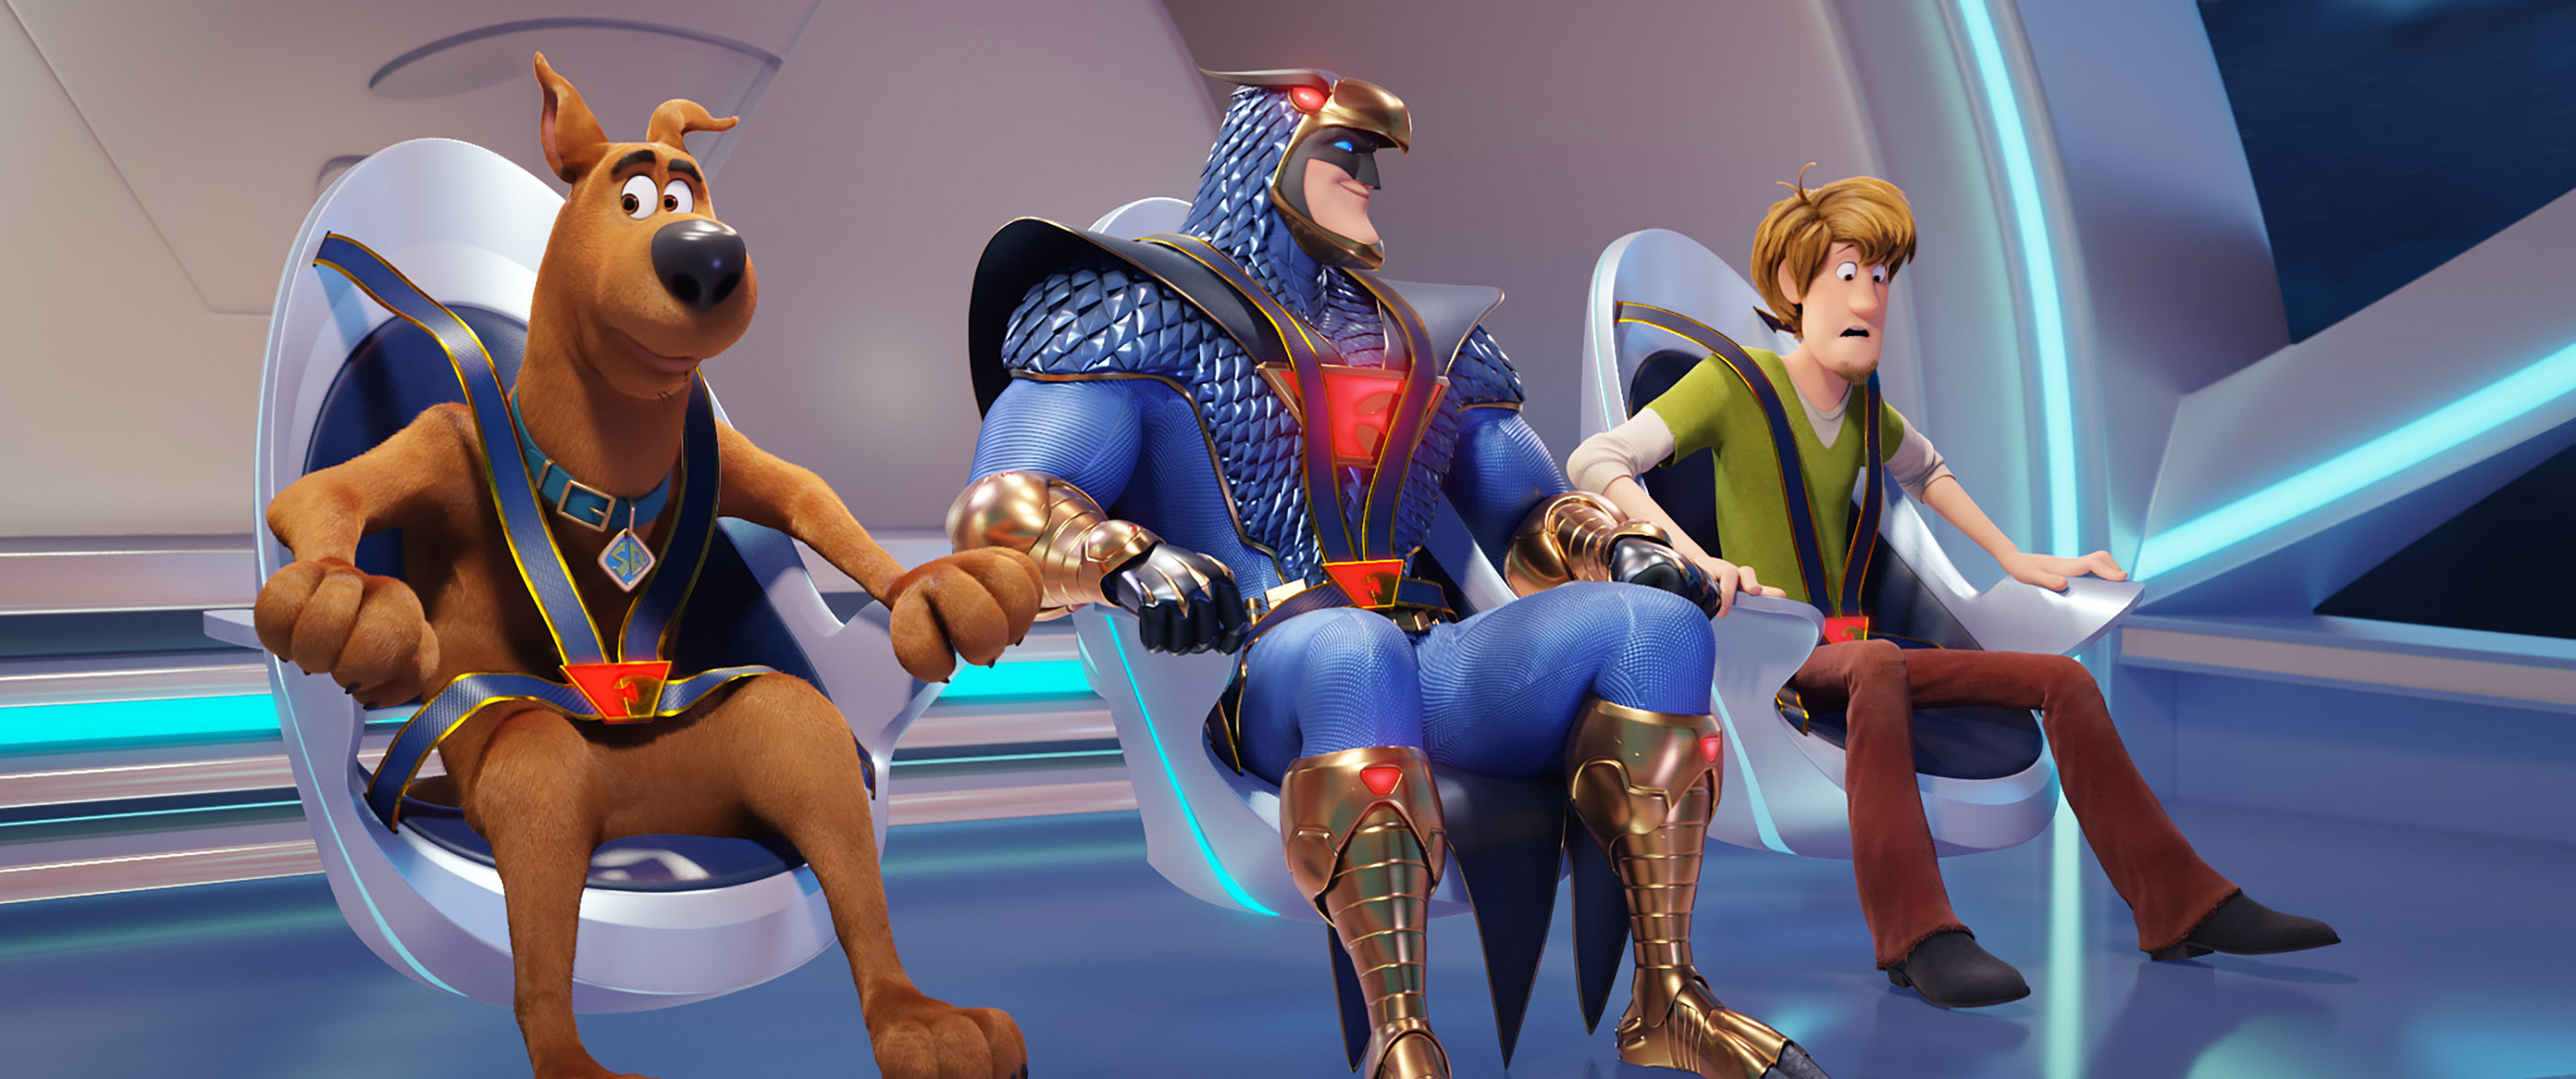 """(L-r) Scooby-Doo voiced by FRANK WELKER, Blue Falcon voiced by MARK WAHLBERG and Shaggy voiced by WILL FORTE and in the new animated adventure """"SCOOB!"""" from Warner Bros. Pictures and Warner Animation Group. Courtesy of Warner Bros. Pictures"""